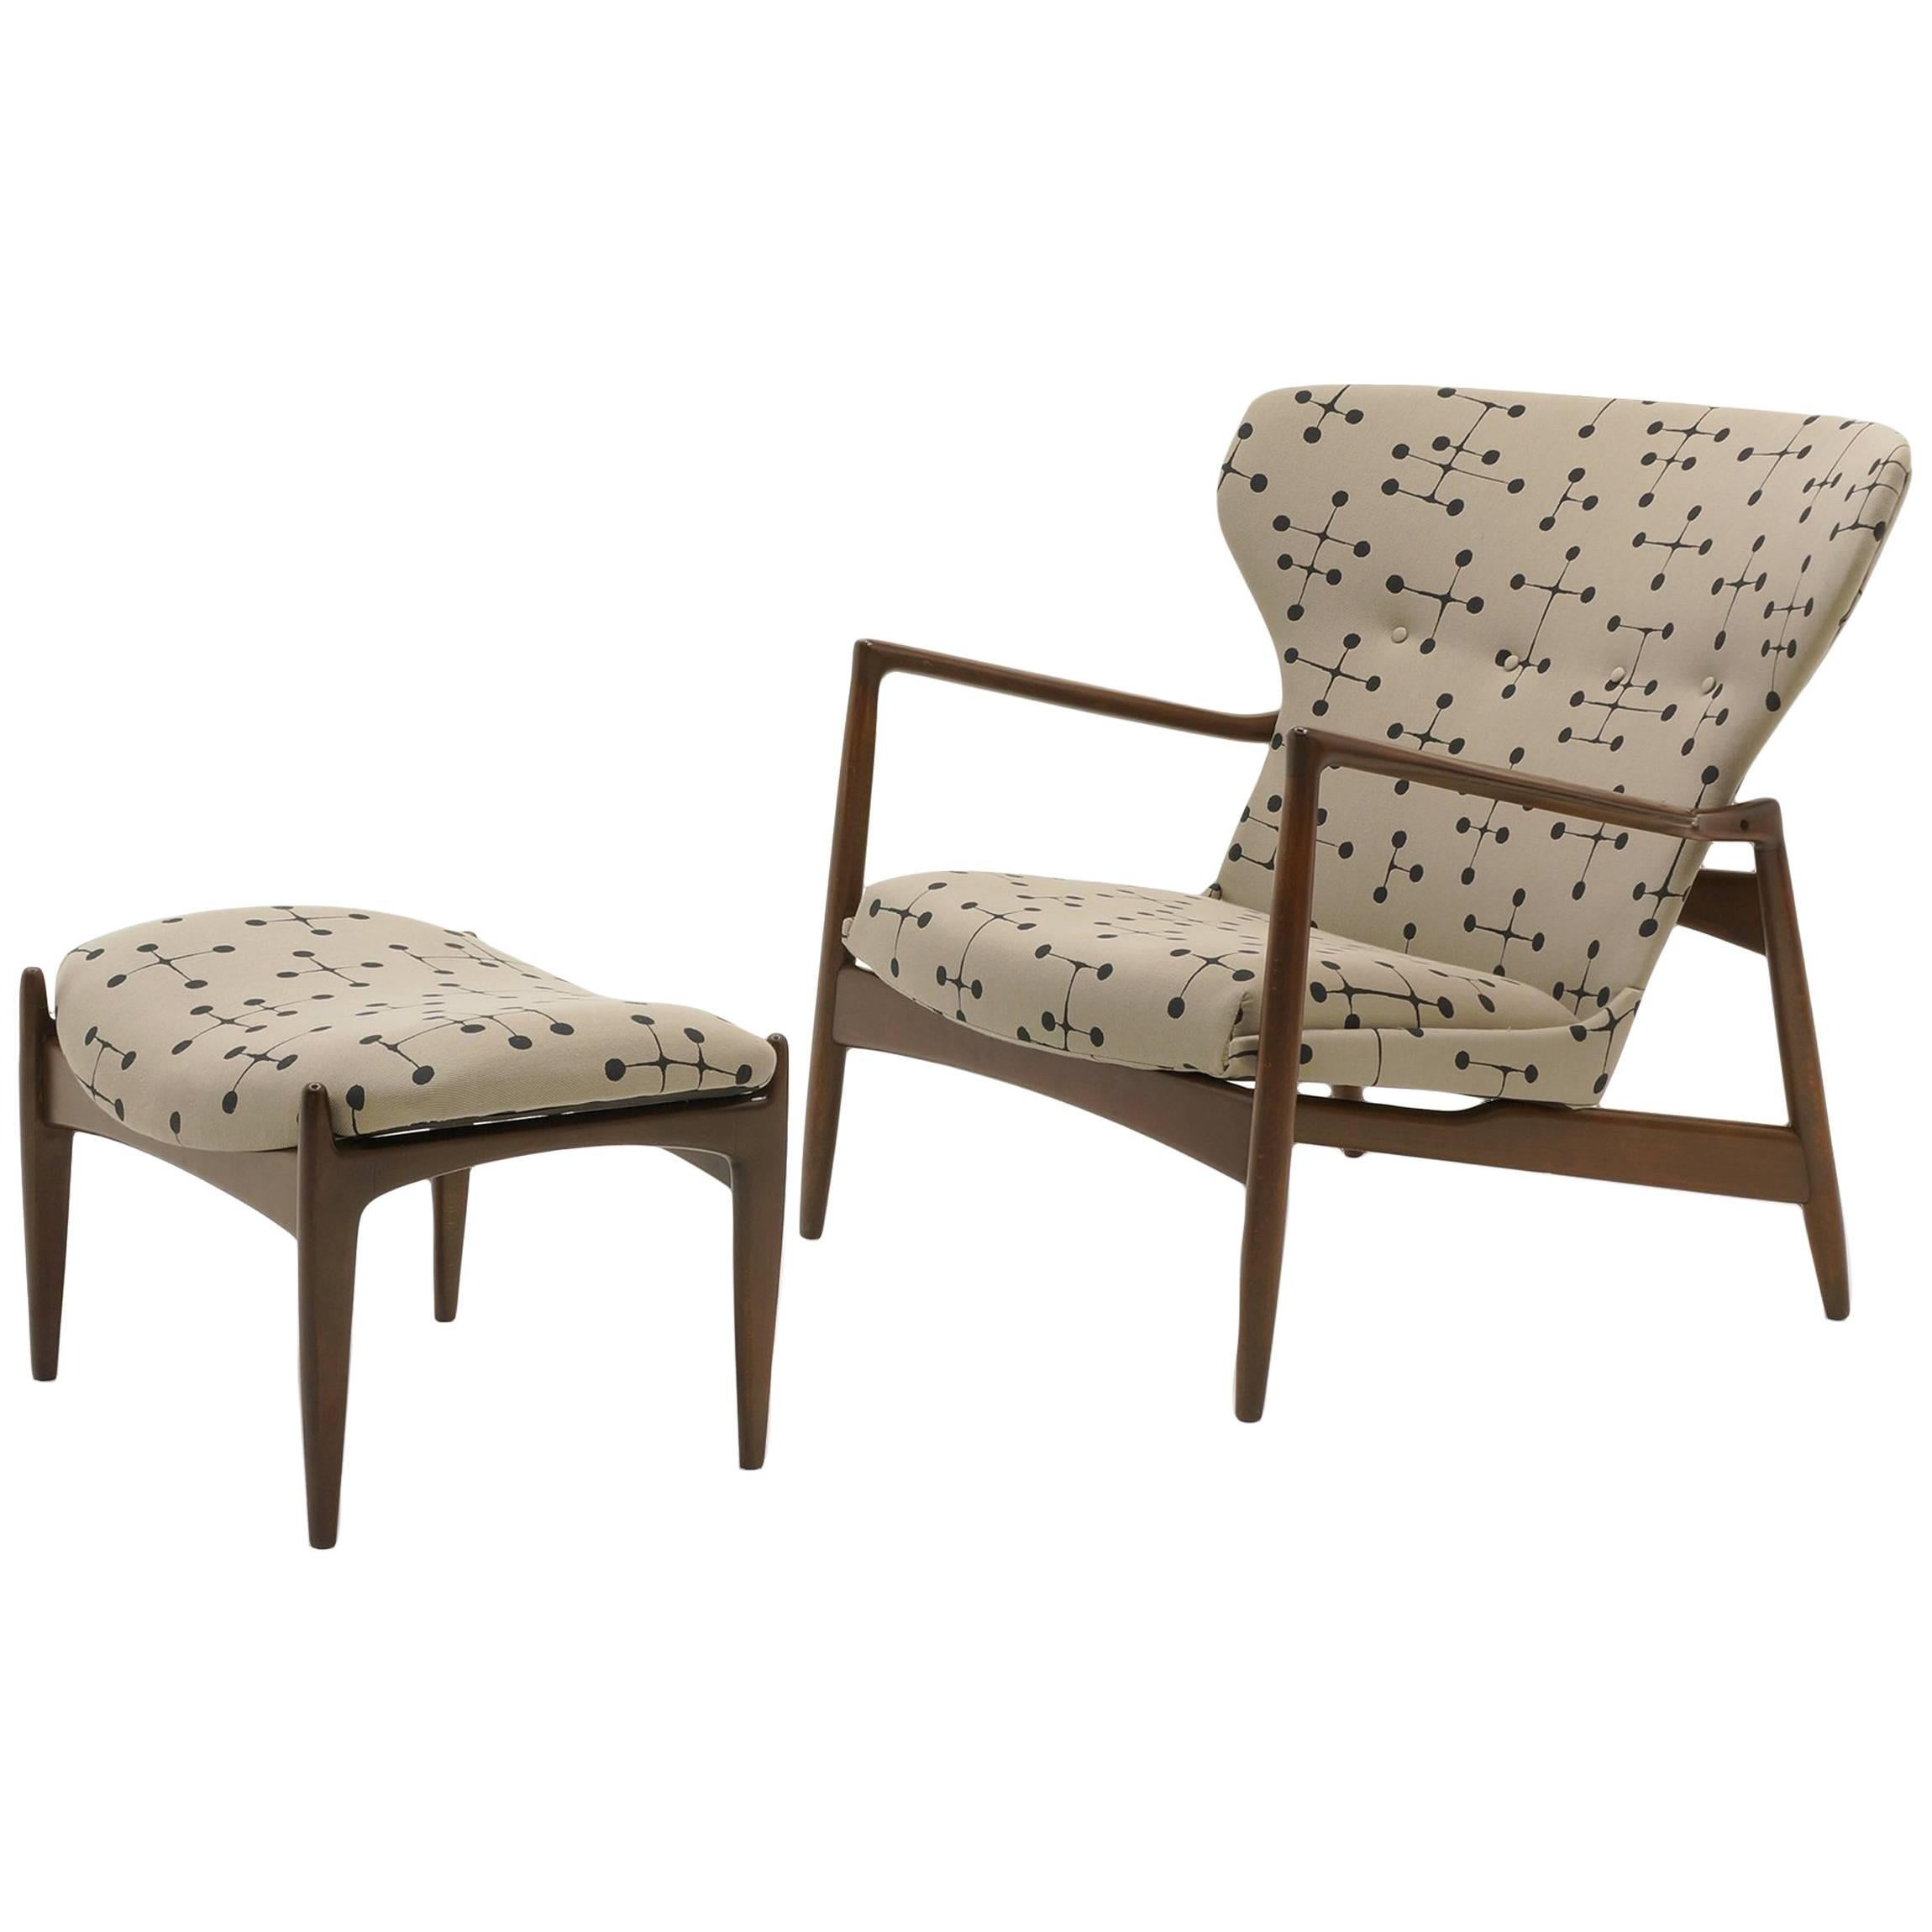 Etonnant Danish High Back Lounge Chair And Ottoman By Ib Kofod Larsen, Eames Dot  Fabric